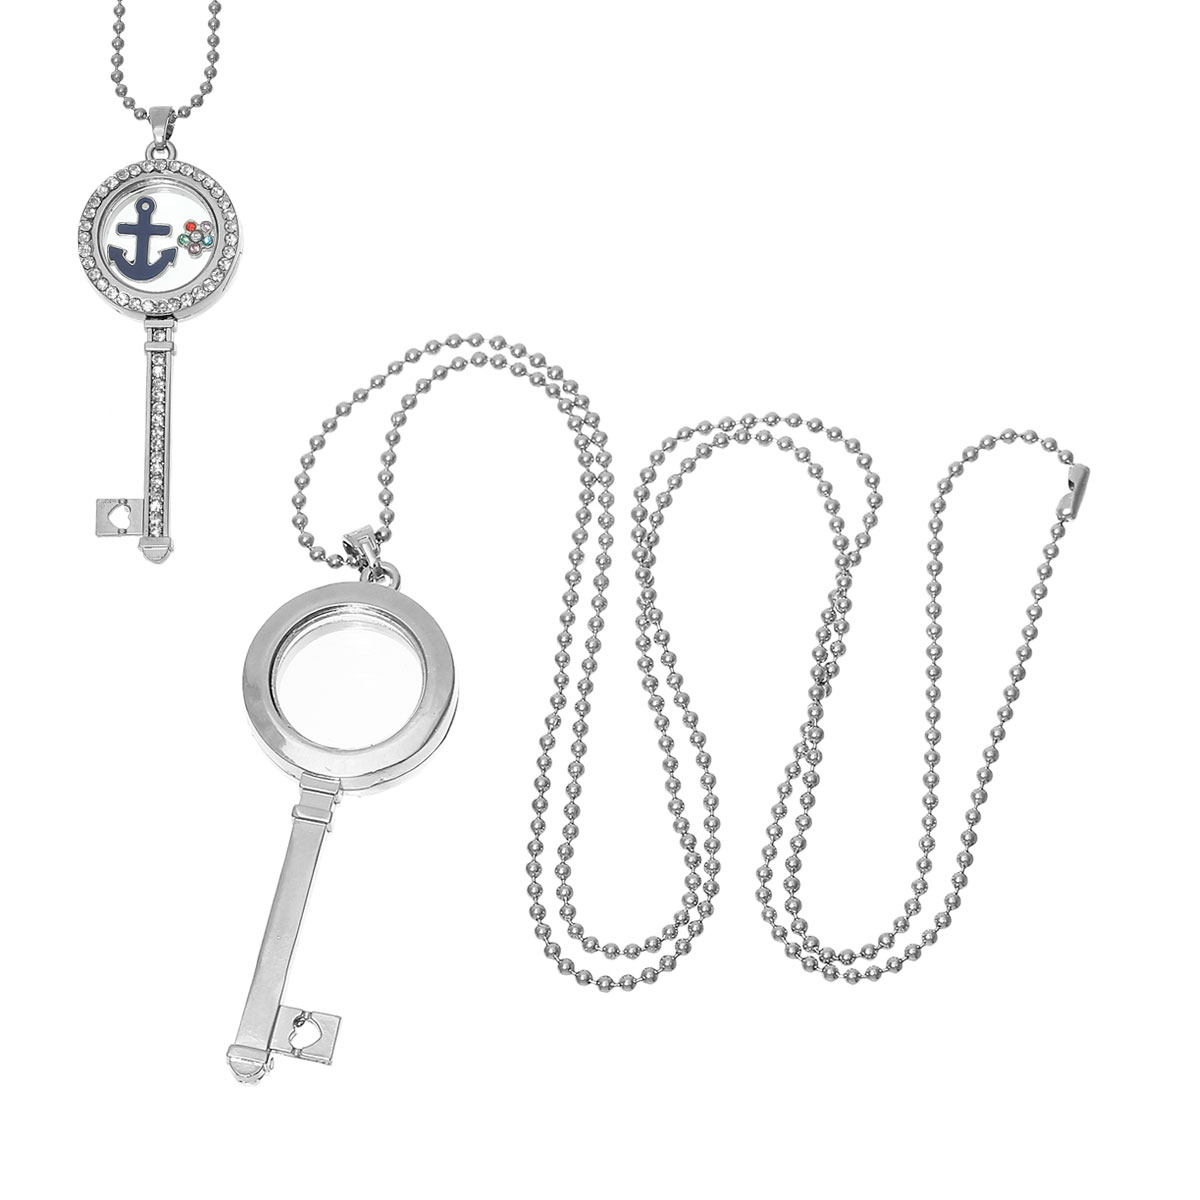 "Magnetic Living Glass Floating Memory Locket Necklace Key Silver Tone Clear Rhinestone 74.5cm(29 3/8"")long,1 Piece 2015 new(China (Mainland))"